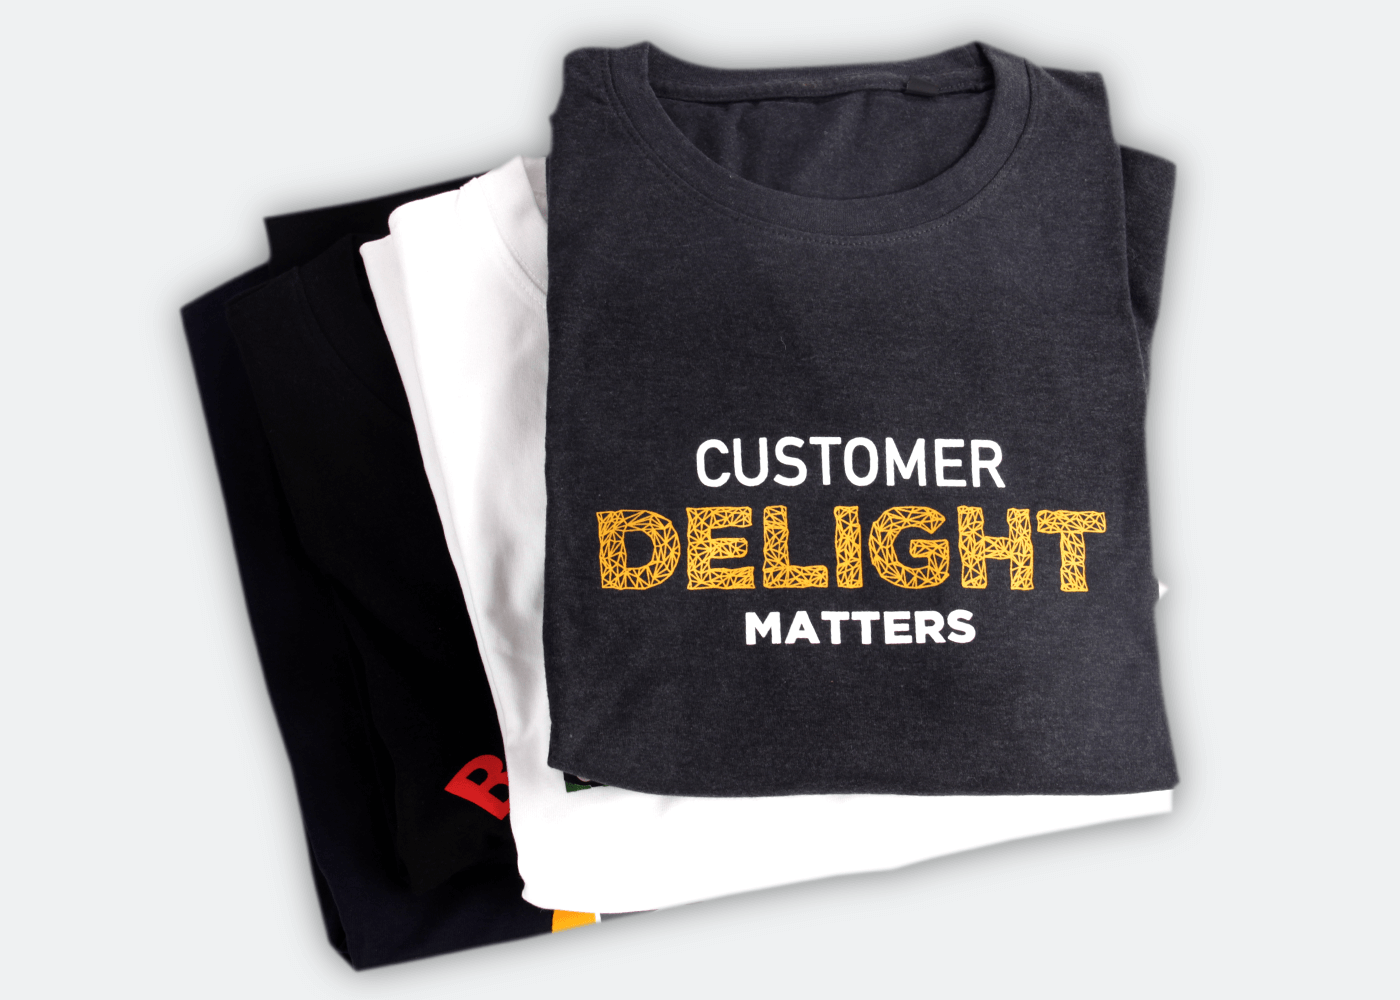 T Shirt Printing Online Customised T Shirts From Rs 180 Inkmonk